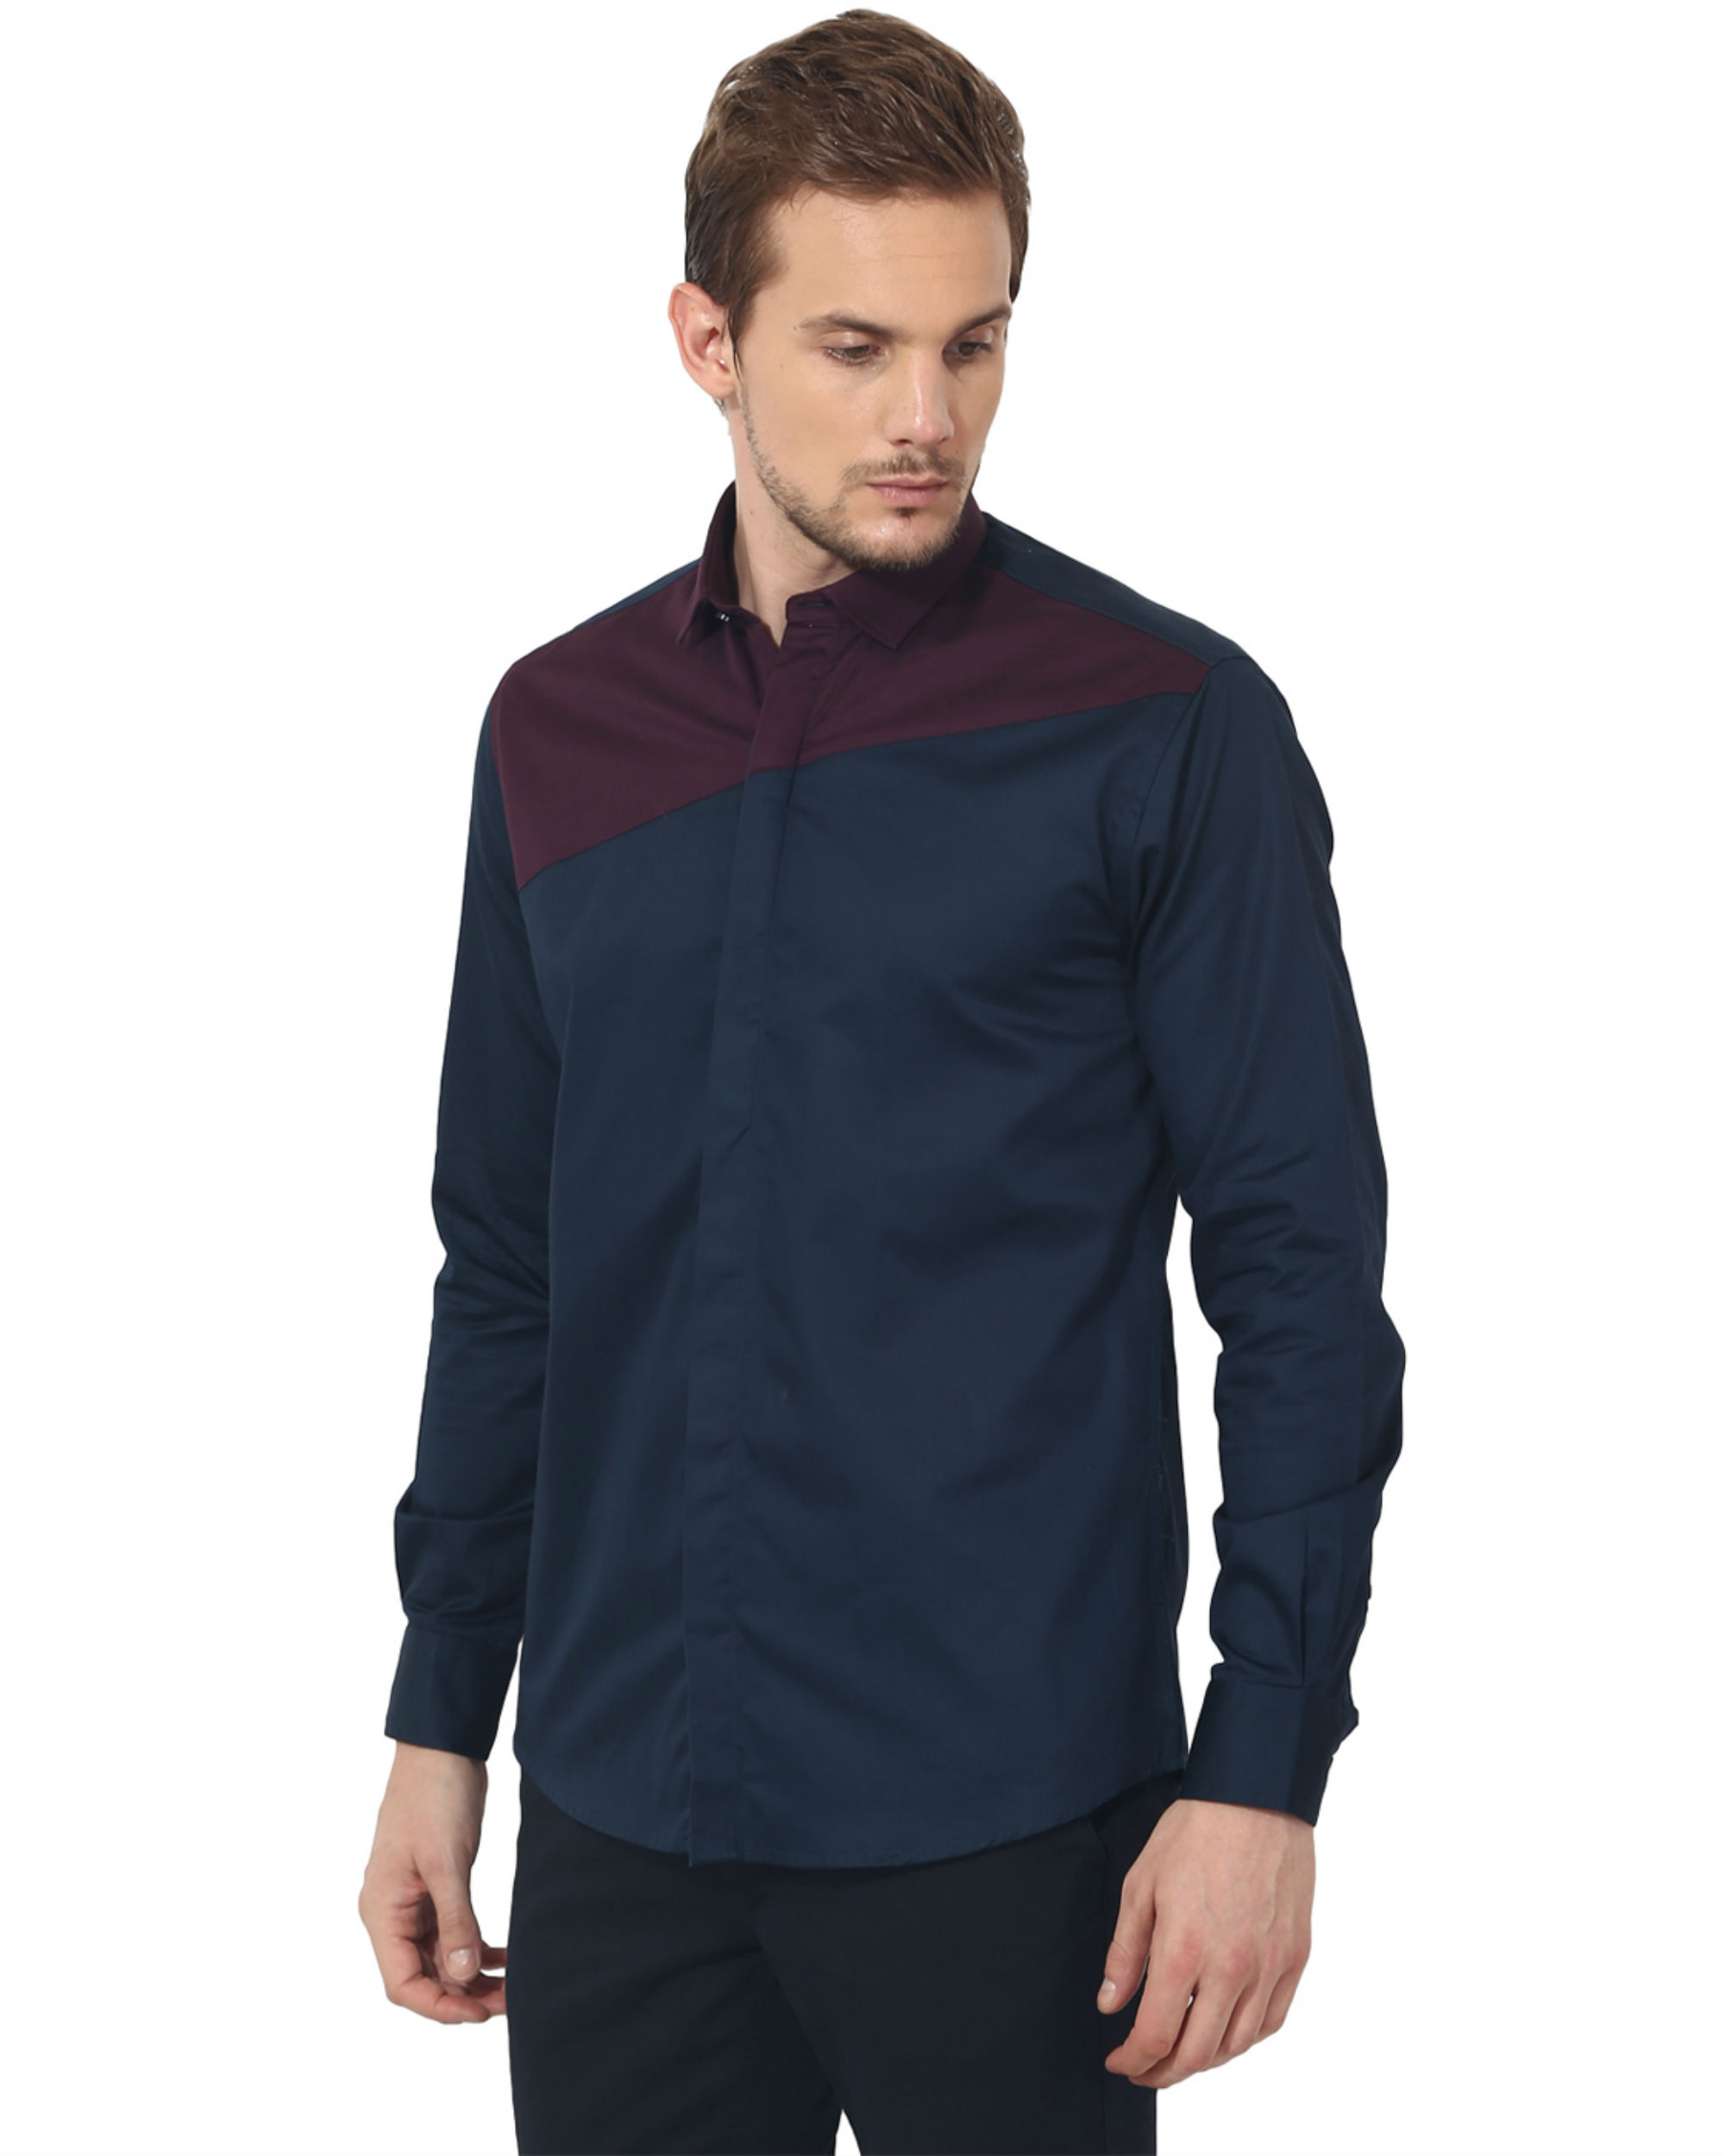 Maroon/blue panel club wear shirt